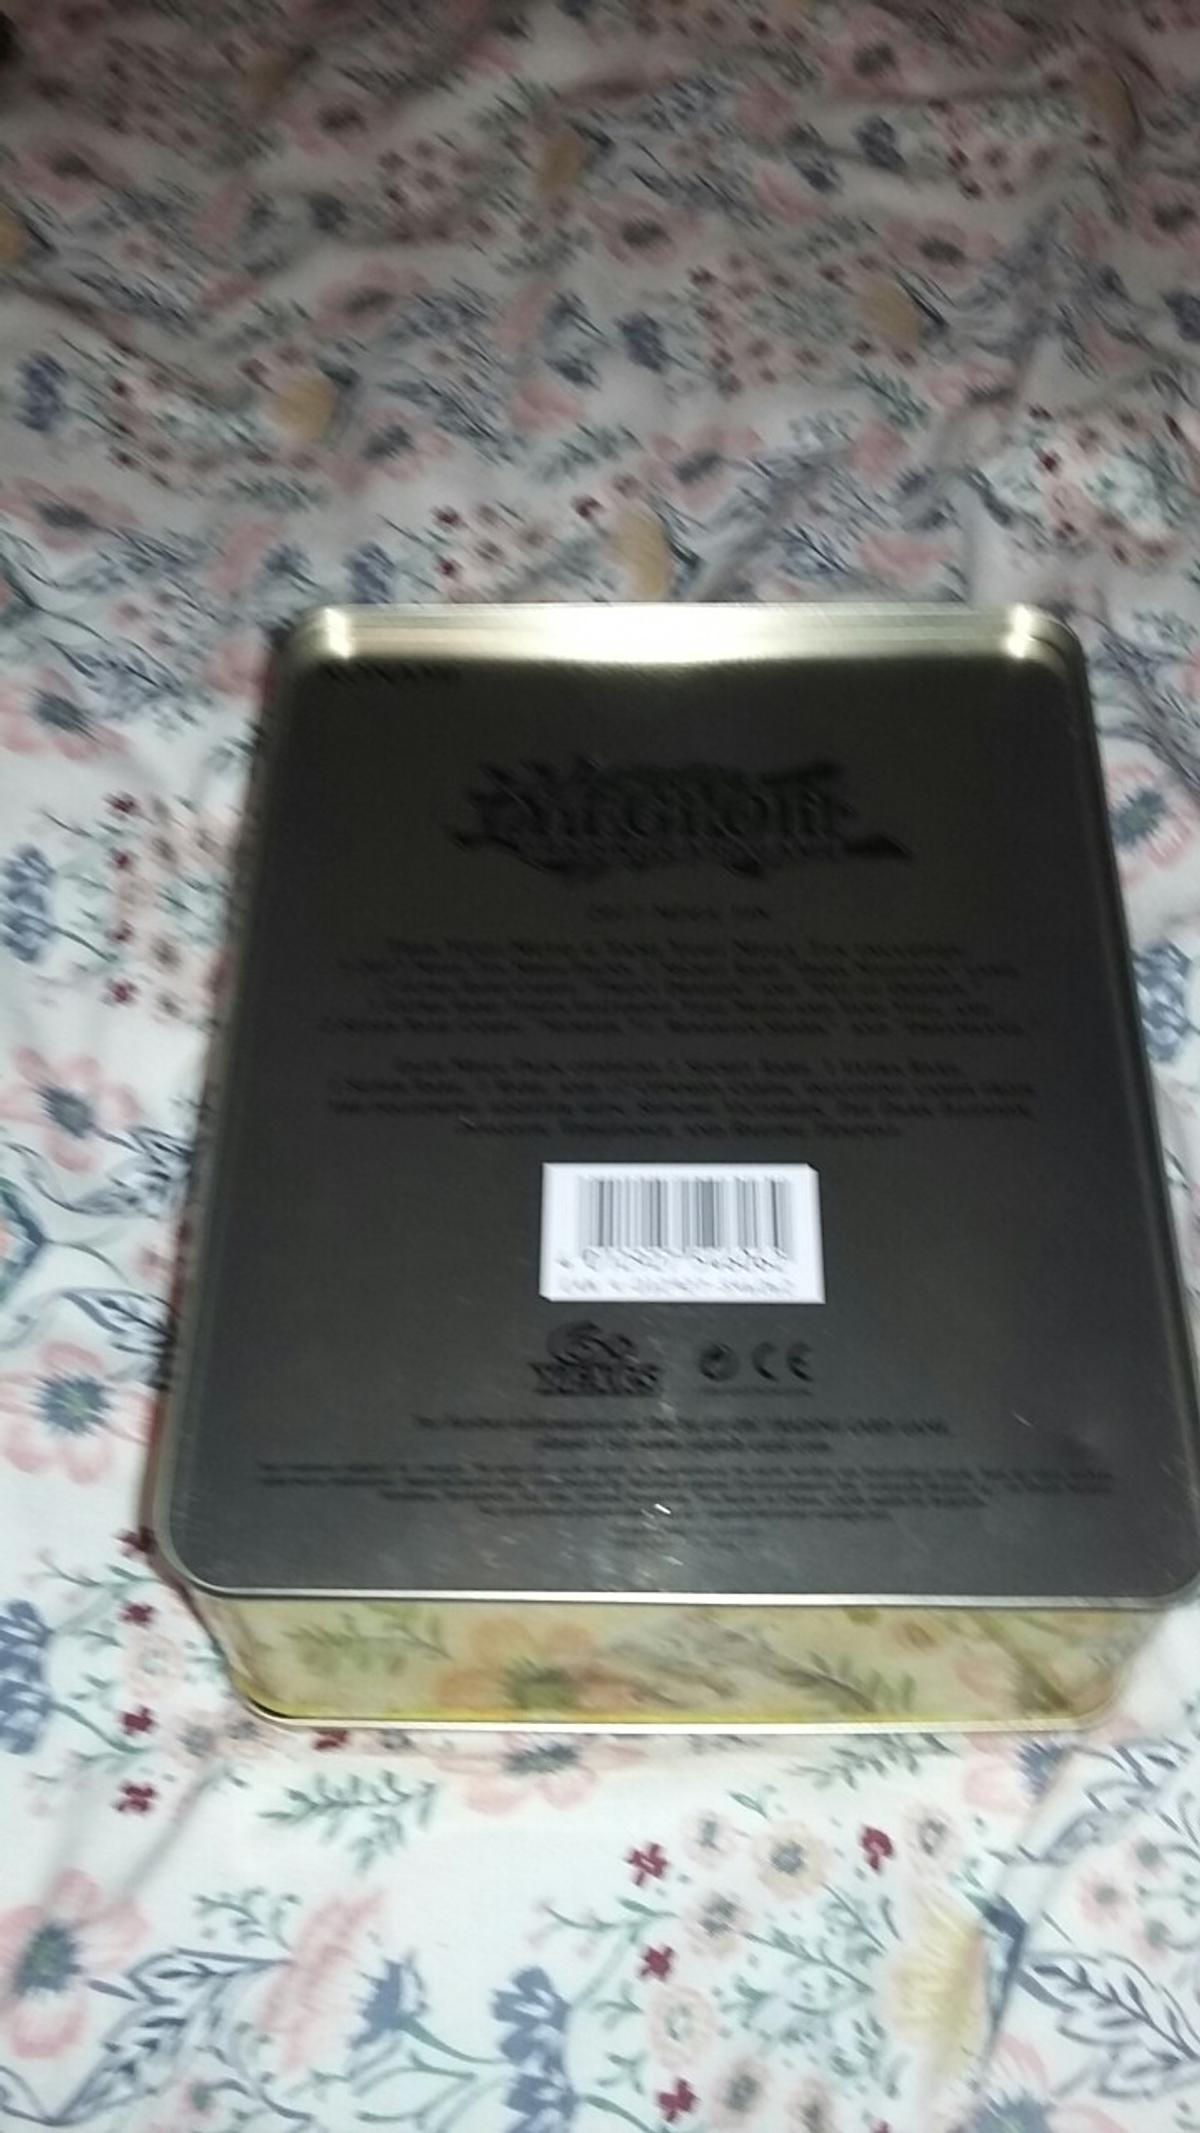 Empty Yugioh! Tin. Good condition and a lot of room to store things. Do not hesitate to contact me and we may be able to negotiate on a fair price. Delivery may vary depending on your location.